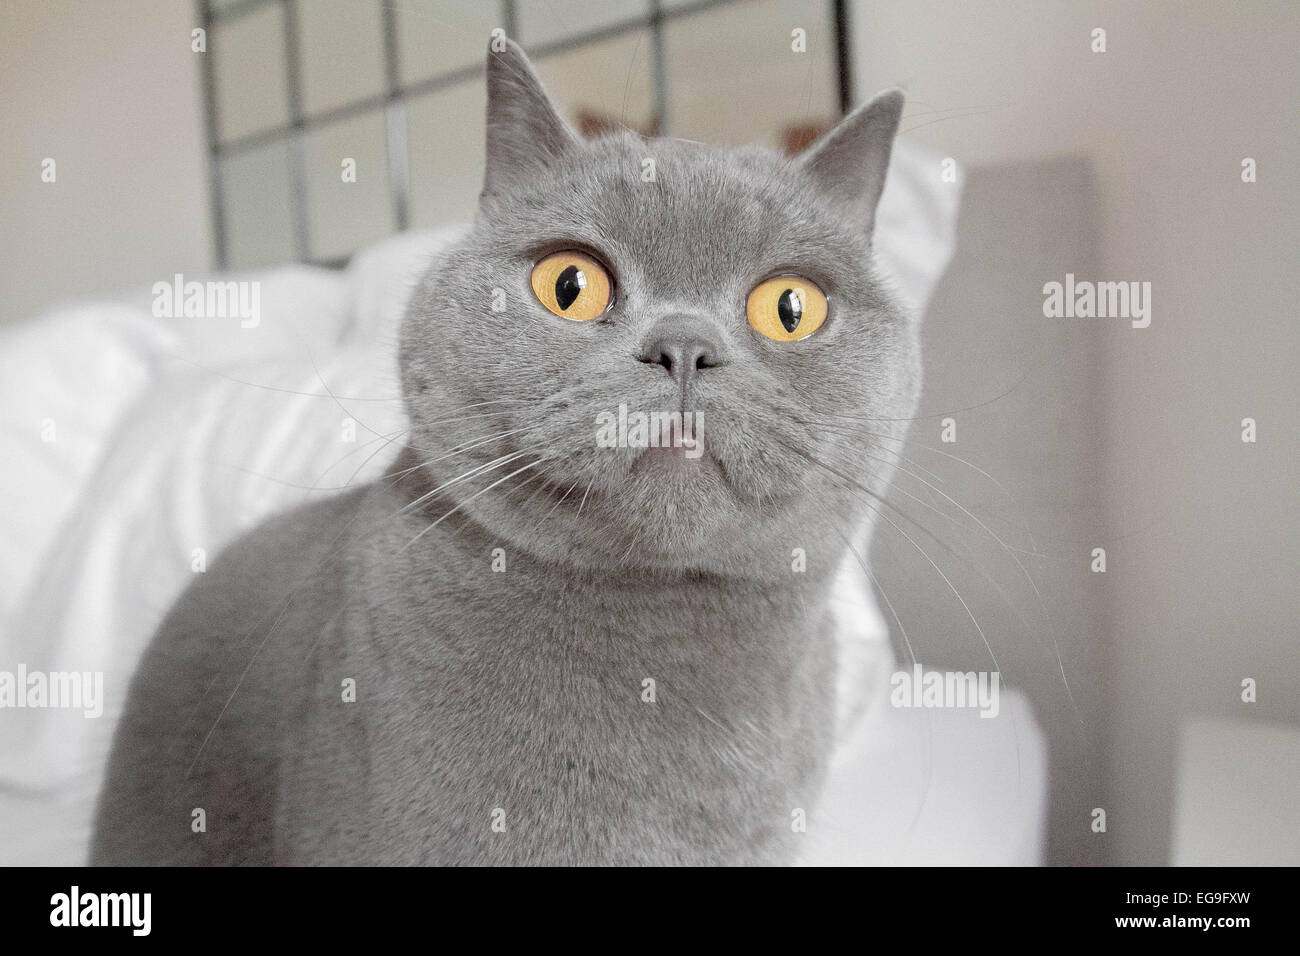 Cat looking at something - Stock Image